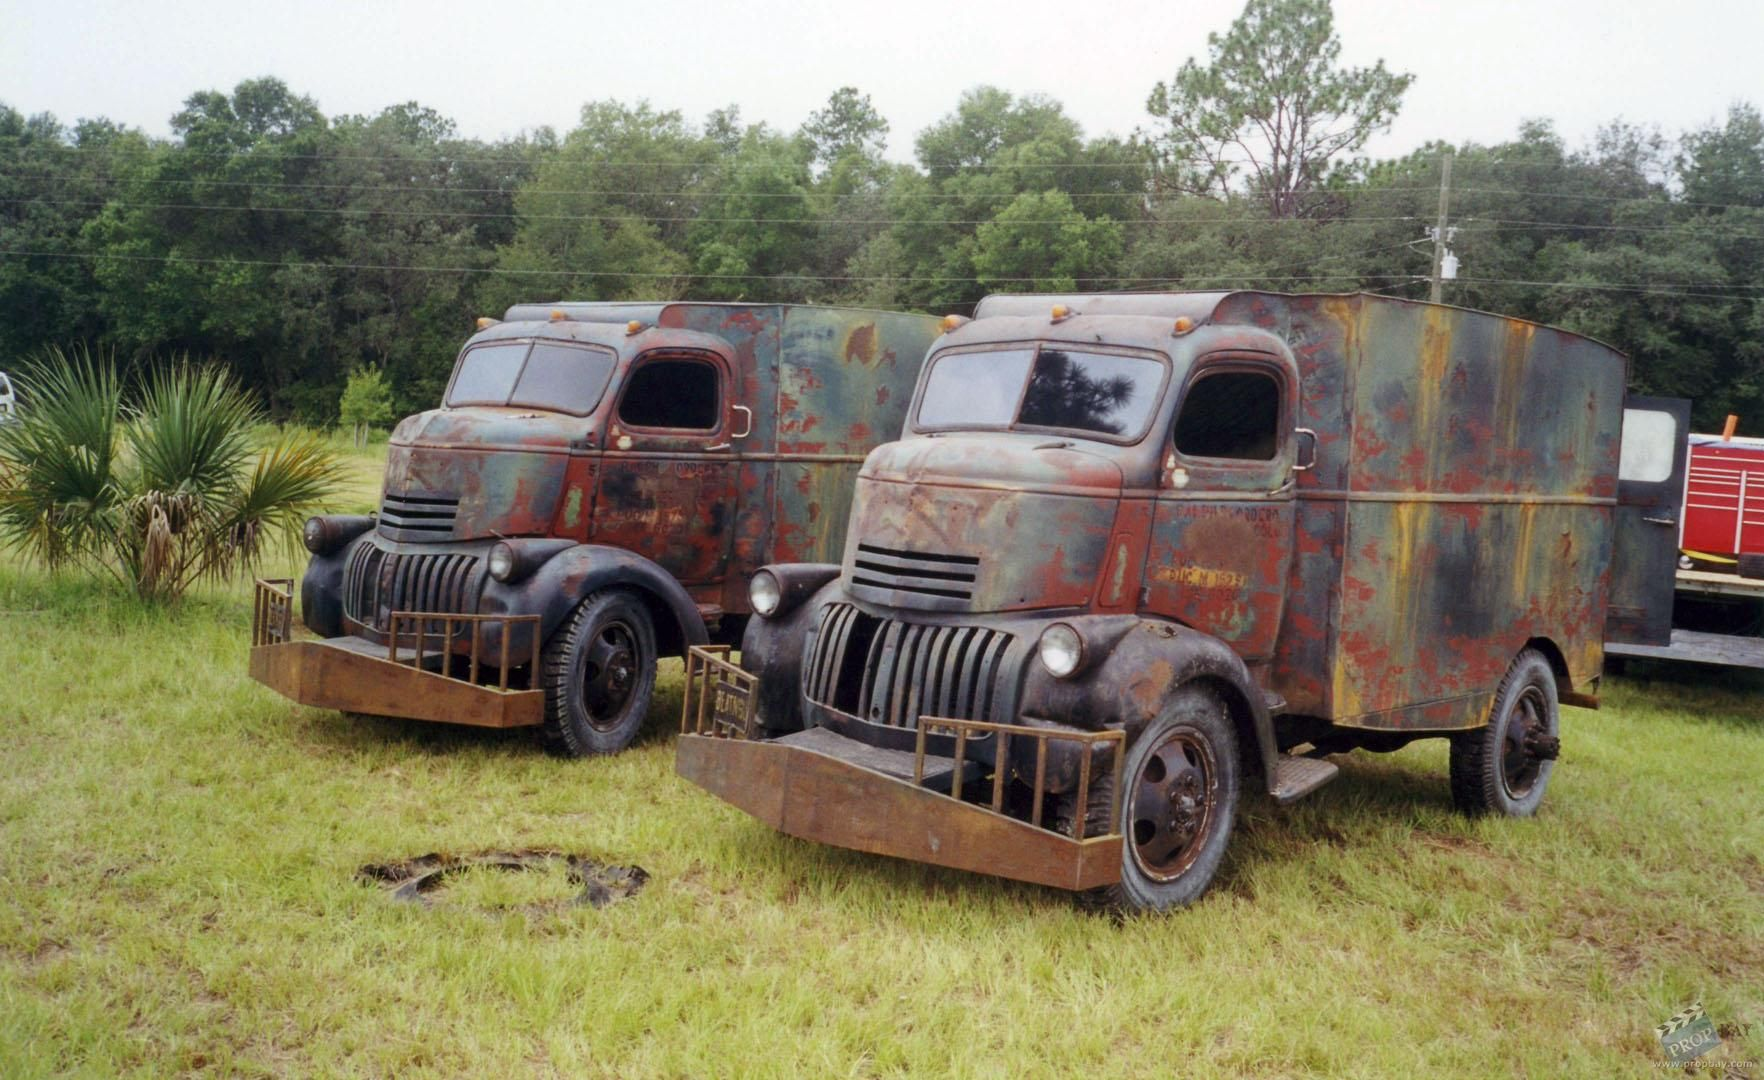 jeepers creepers truck | Click to view bigger image | I know that ...